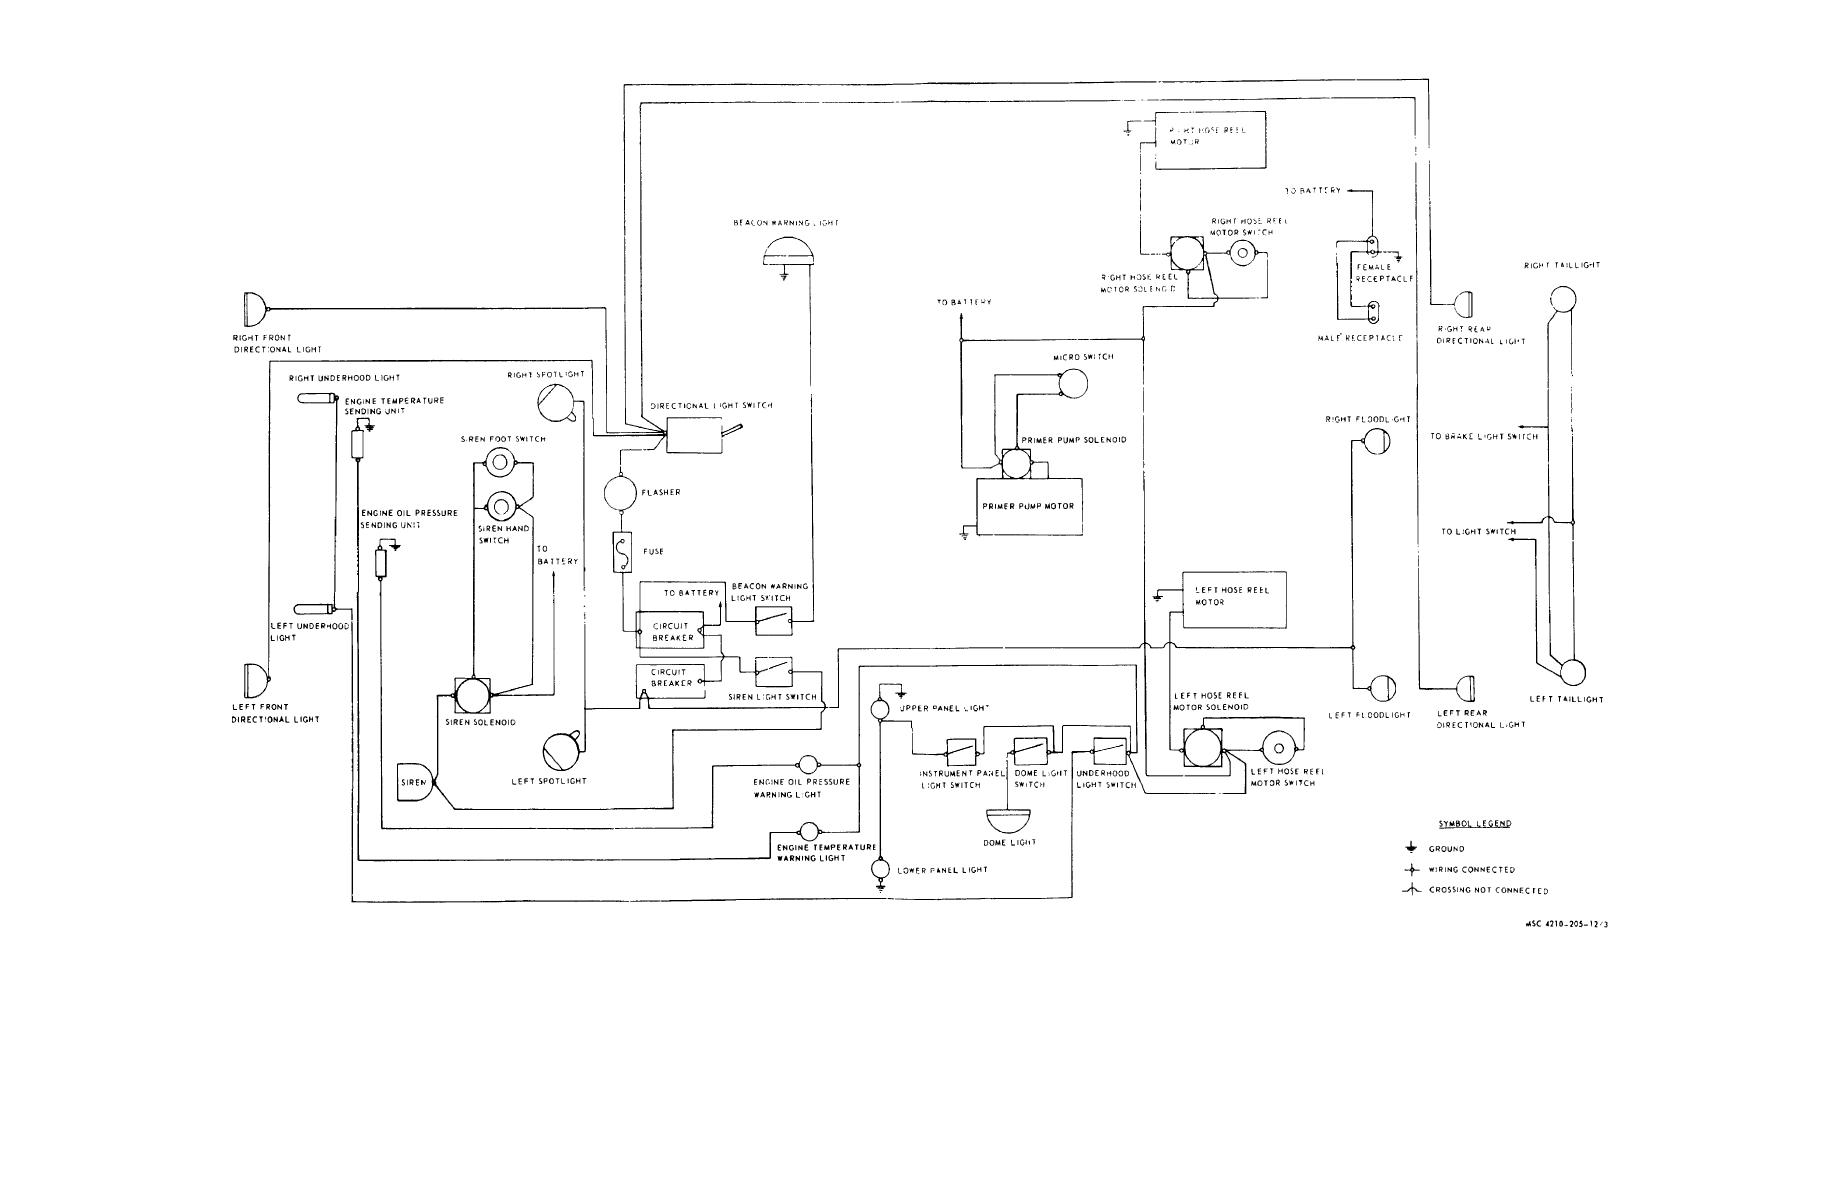 fire pump wiring diagram 1979 trans am starter schematic free engine image for user